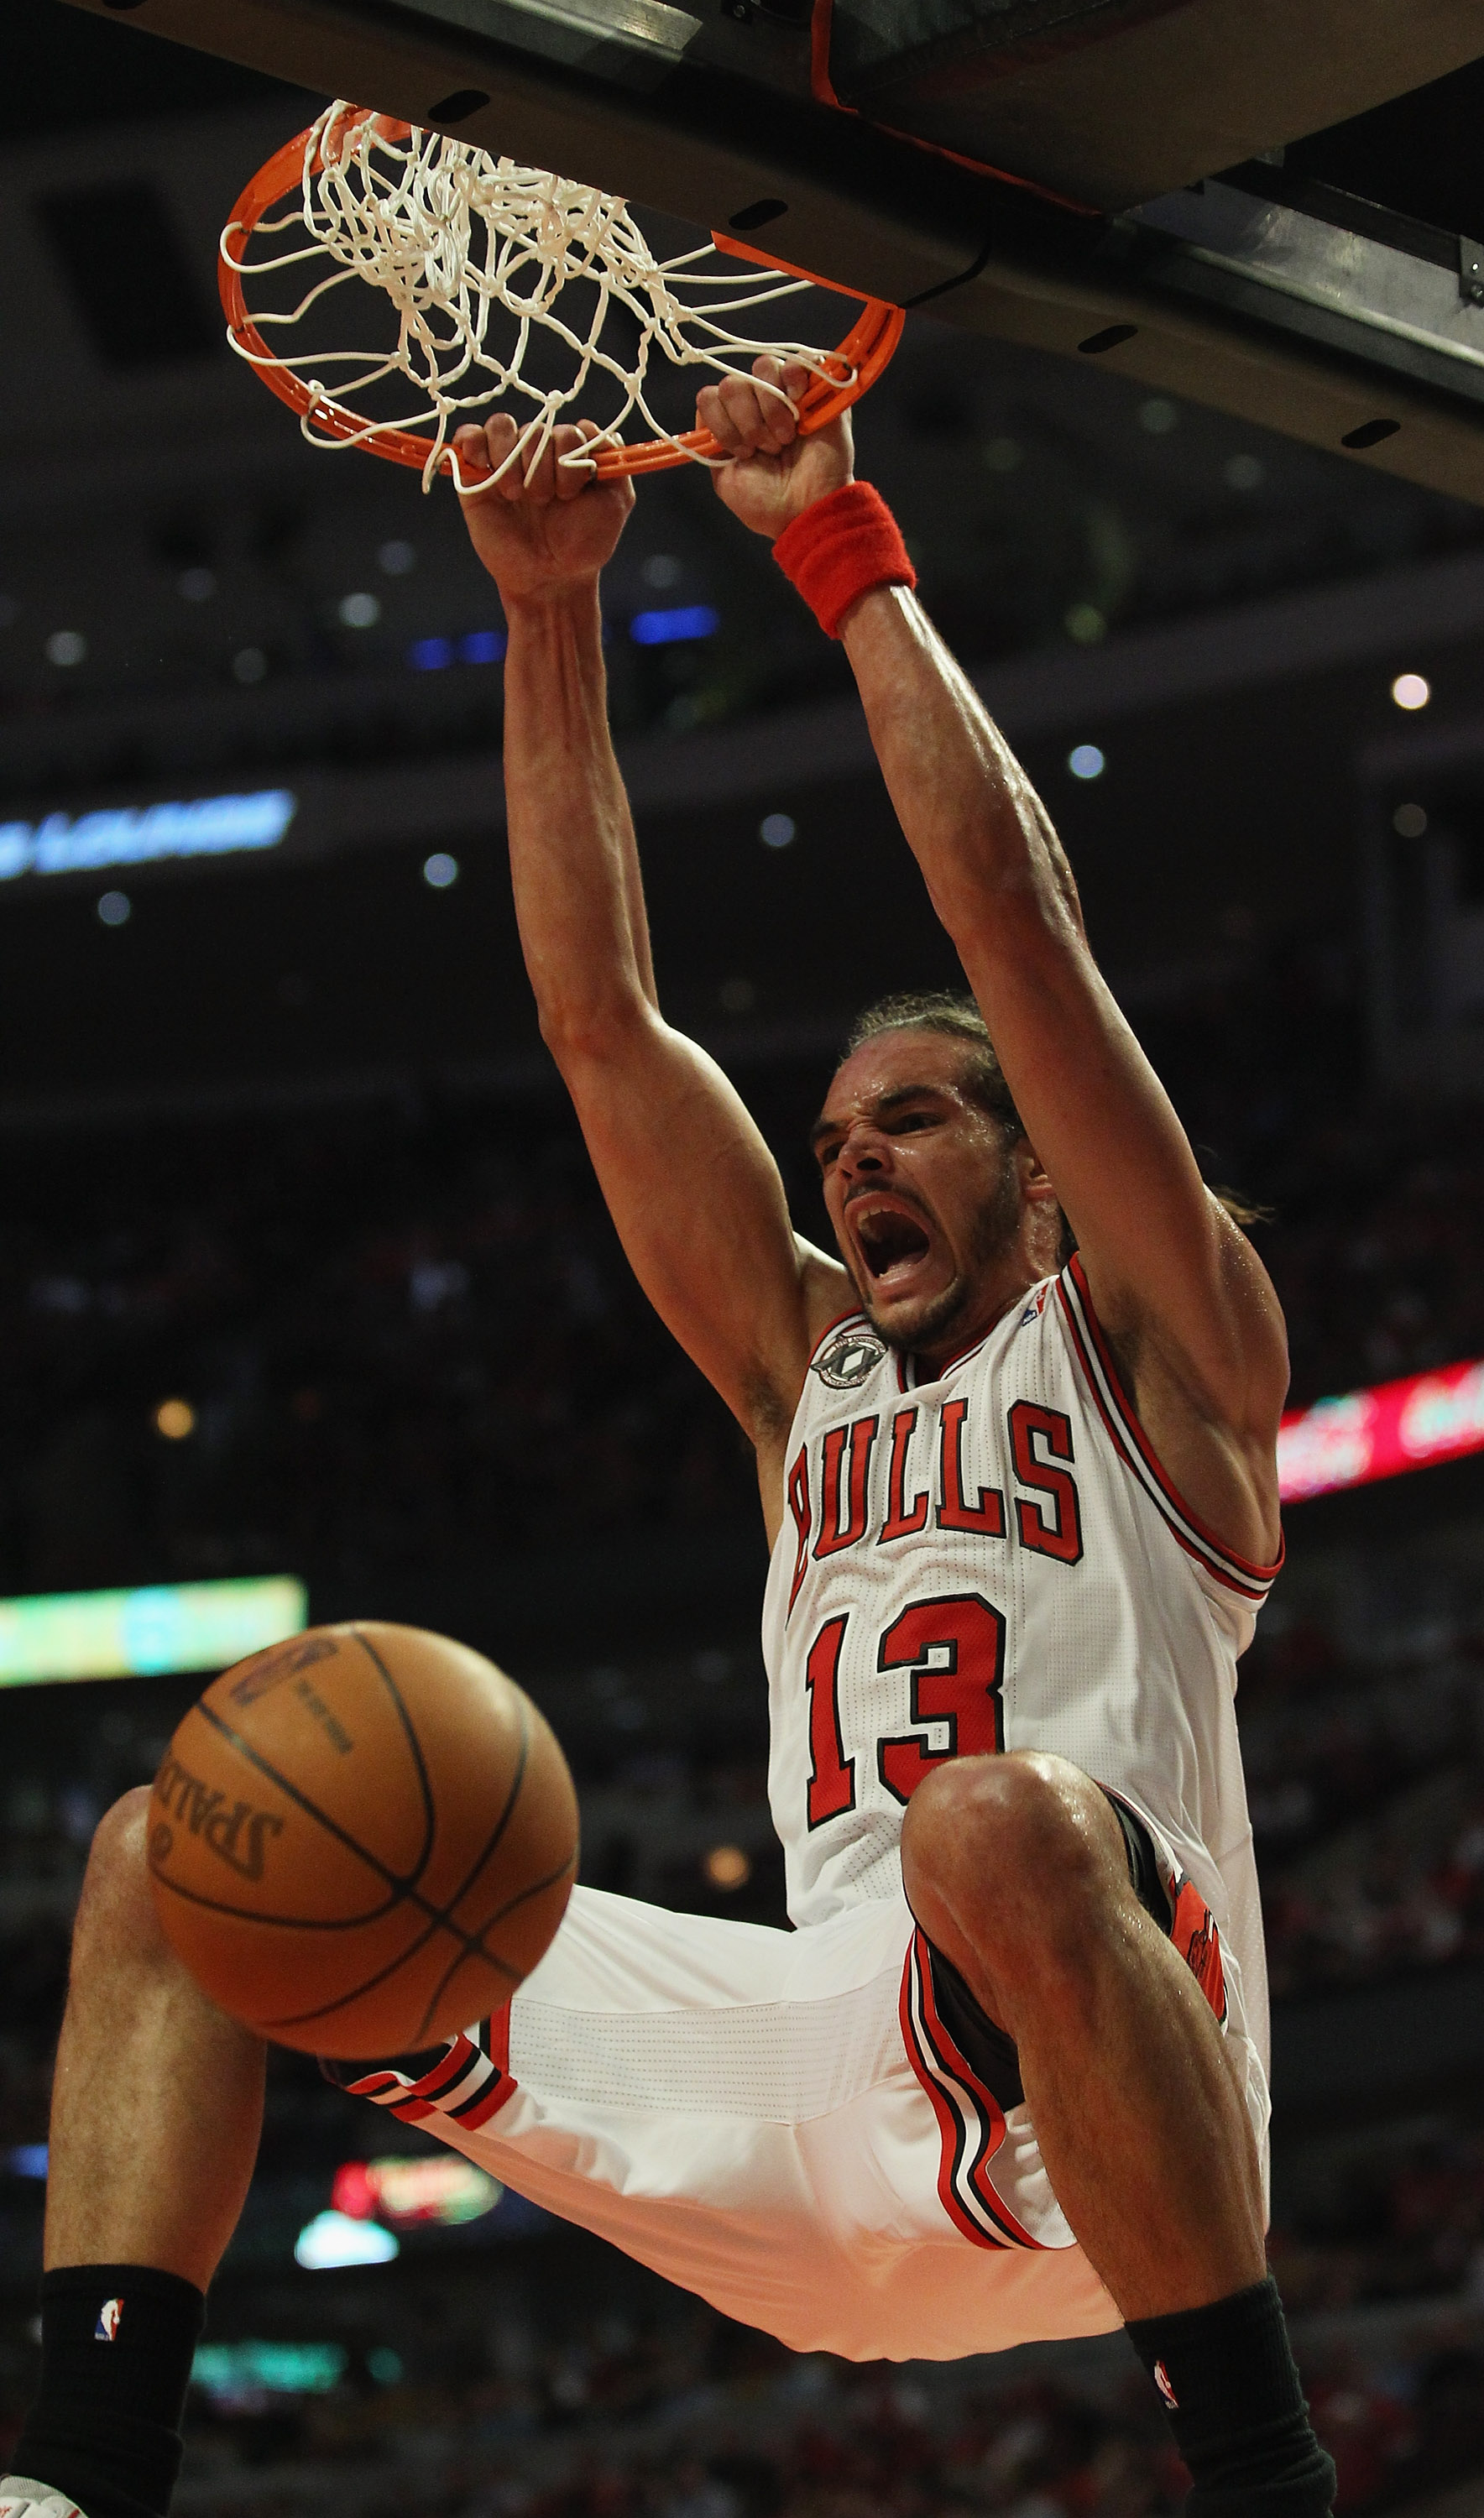 CHICAGO, IL - MAY 02: Joakim Noah #13 of the Chicago Bulls dunks the ball against the Atlanta Hawks in Game One of the Eastern Conference Semifinals in the 2011 NBA Playoffs at the United Center on May 2, 2011 in Chicago, Illinois. The Hawks defeated the